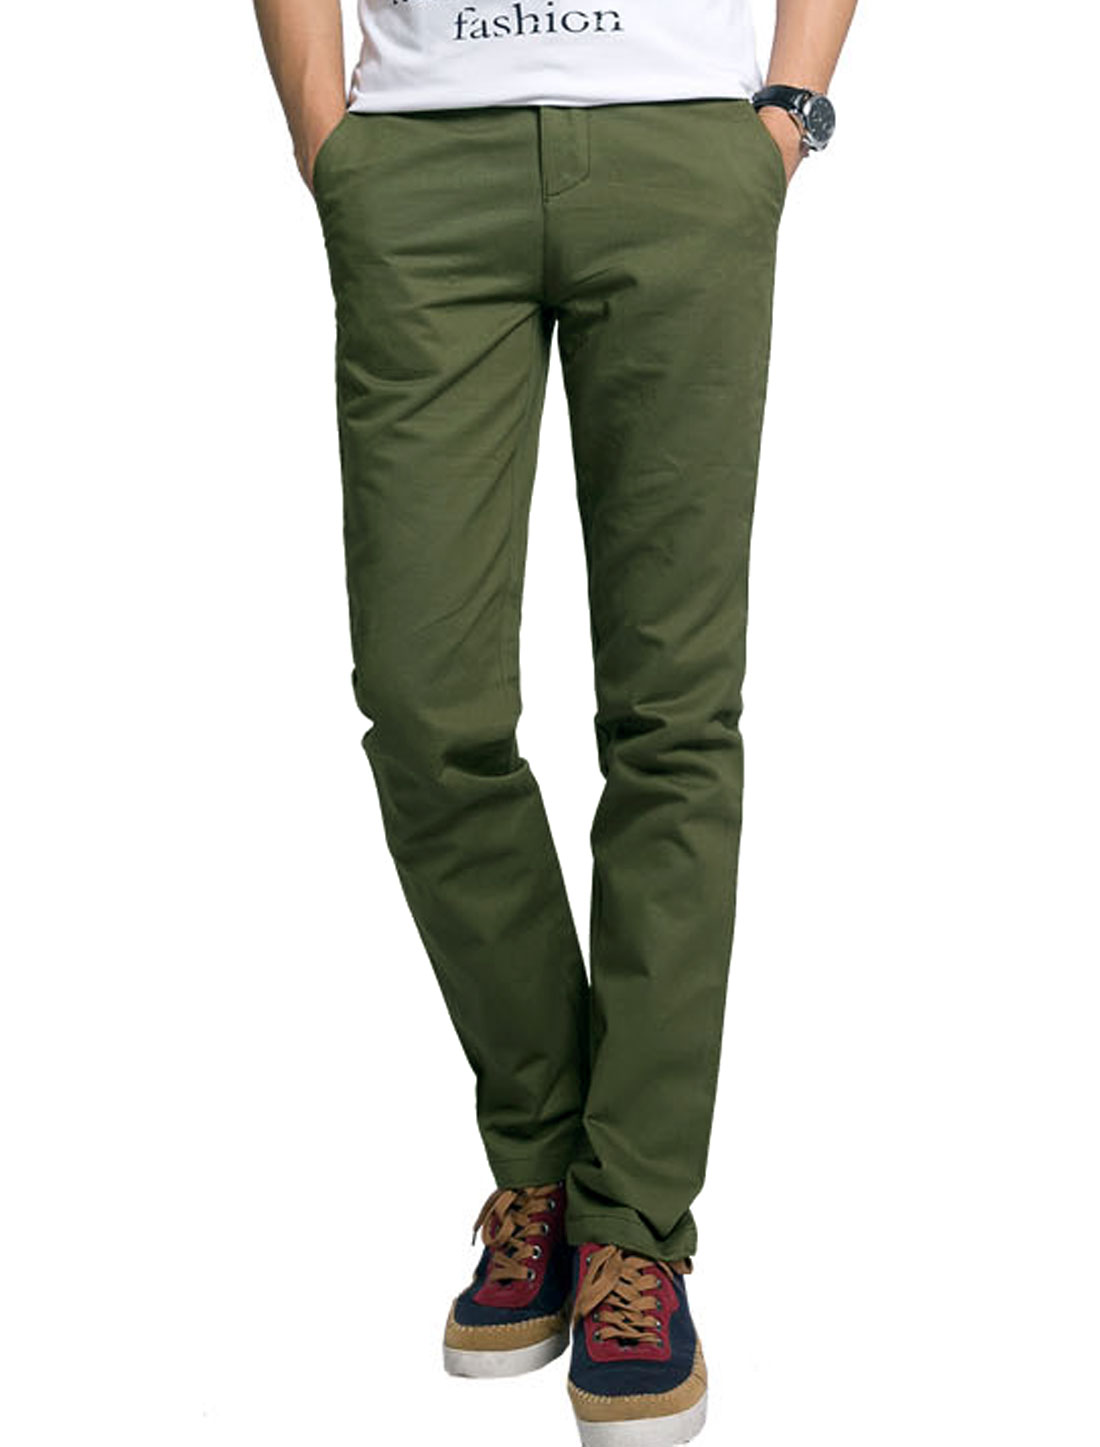 Men Natural Waist One Hip Pocket Decor Leisure Summer Pants Army Green W32